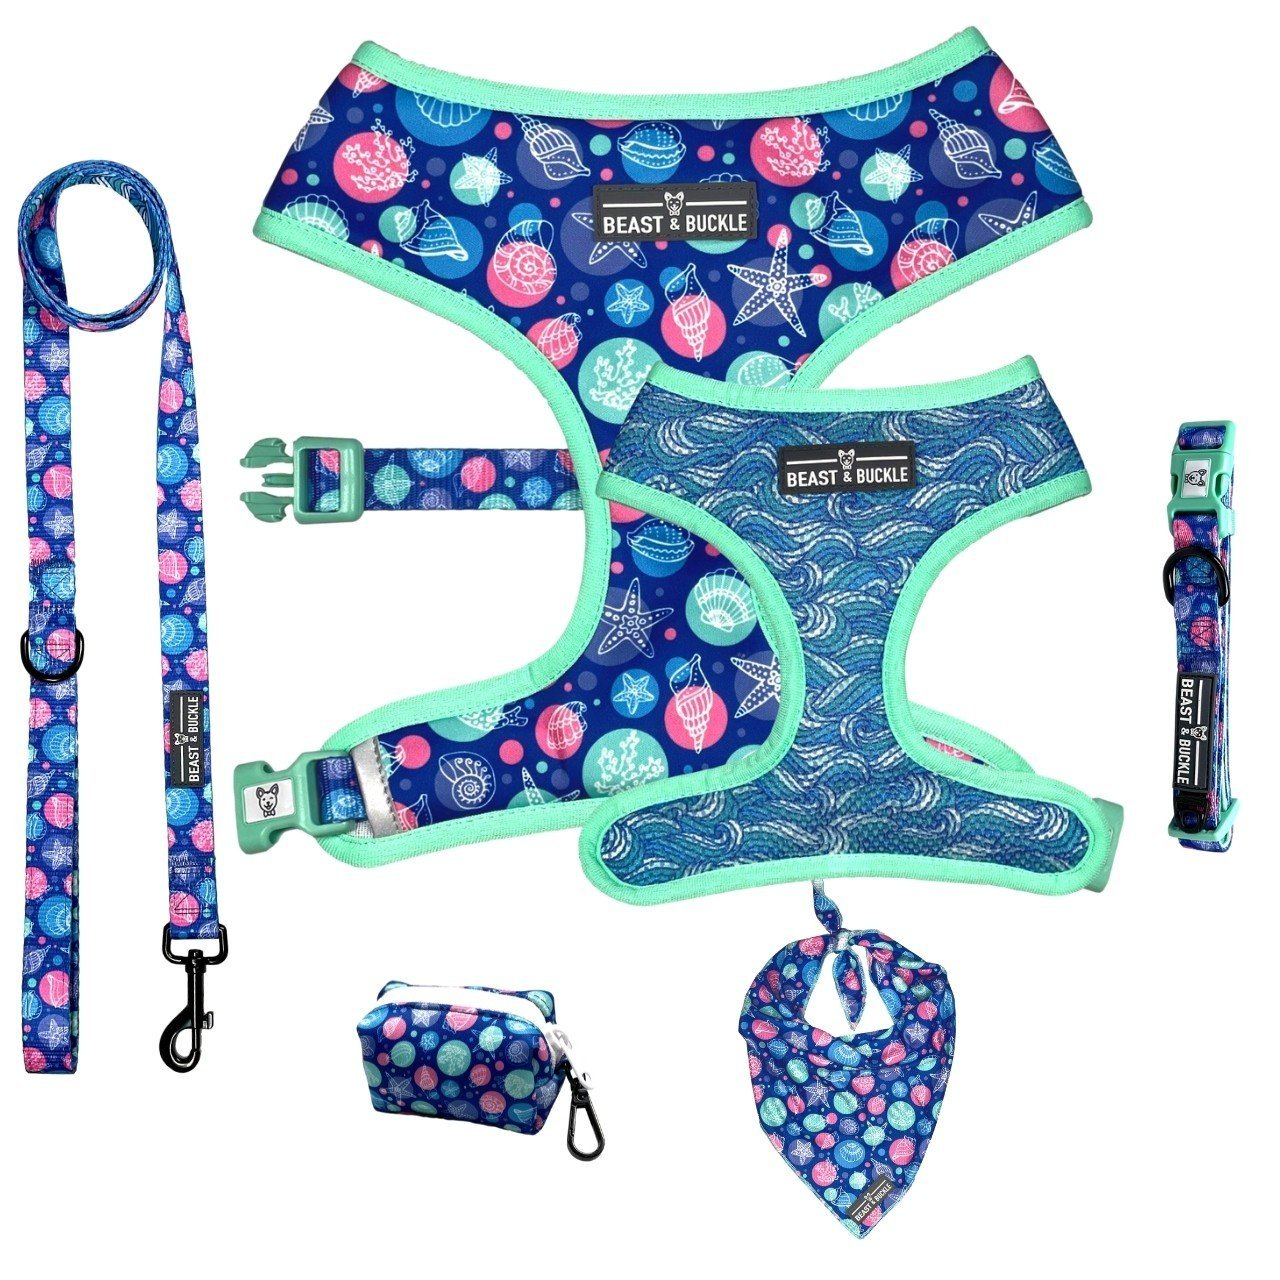 Seashell Harness Collection Bundle - Beast & Buckle